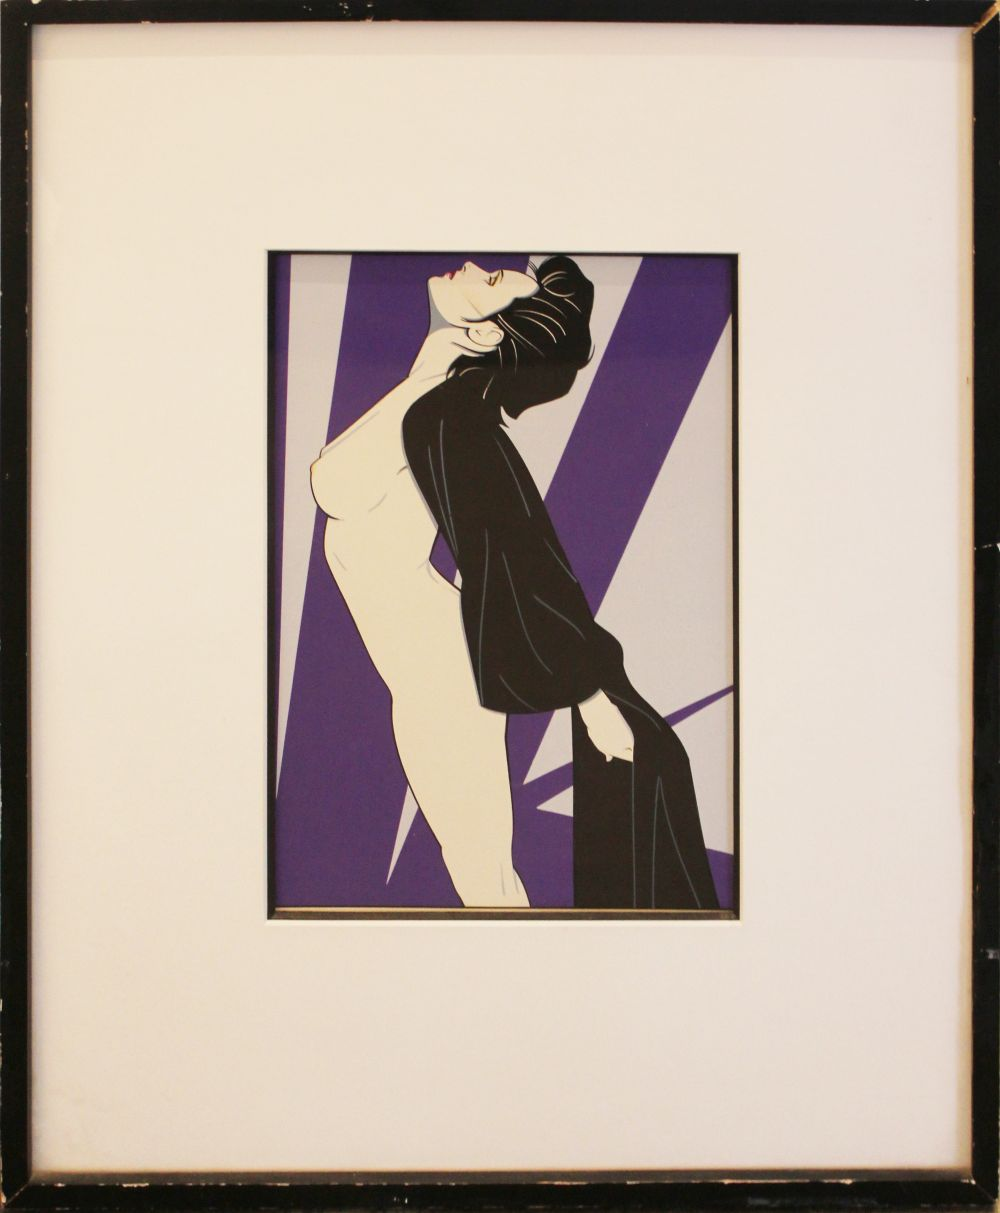 PATRICK NAGEL, Untitled (Nude in Robe), c. 1983